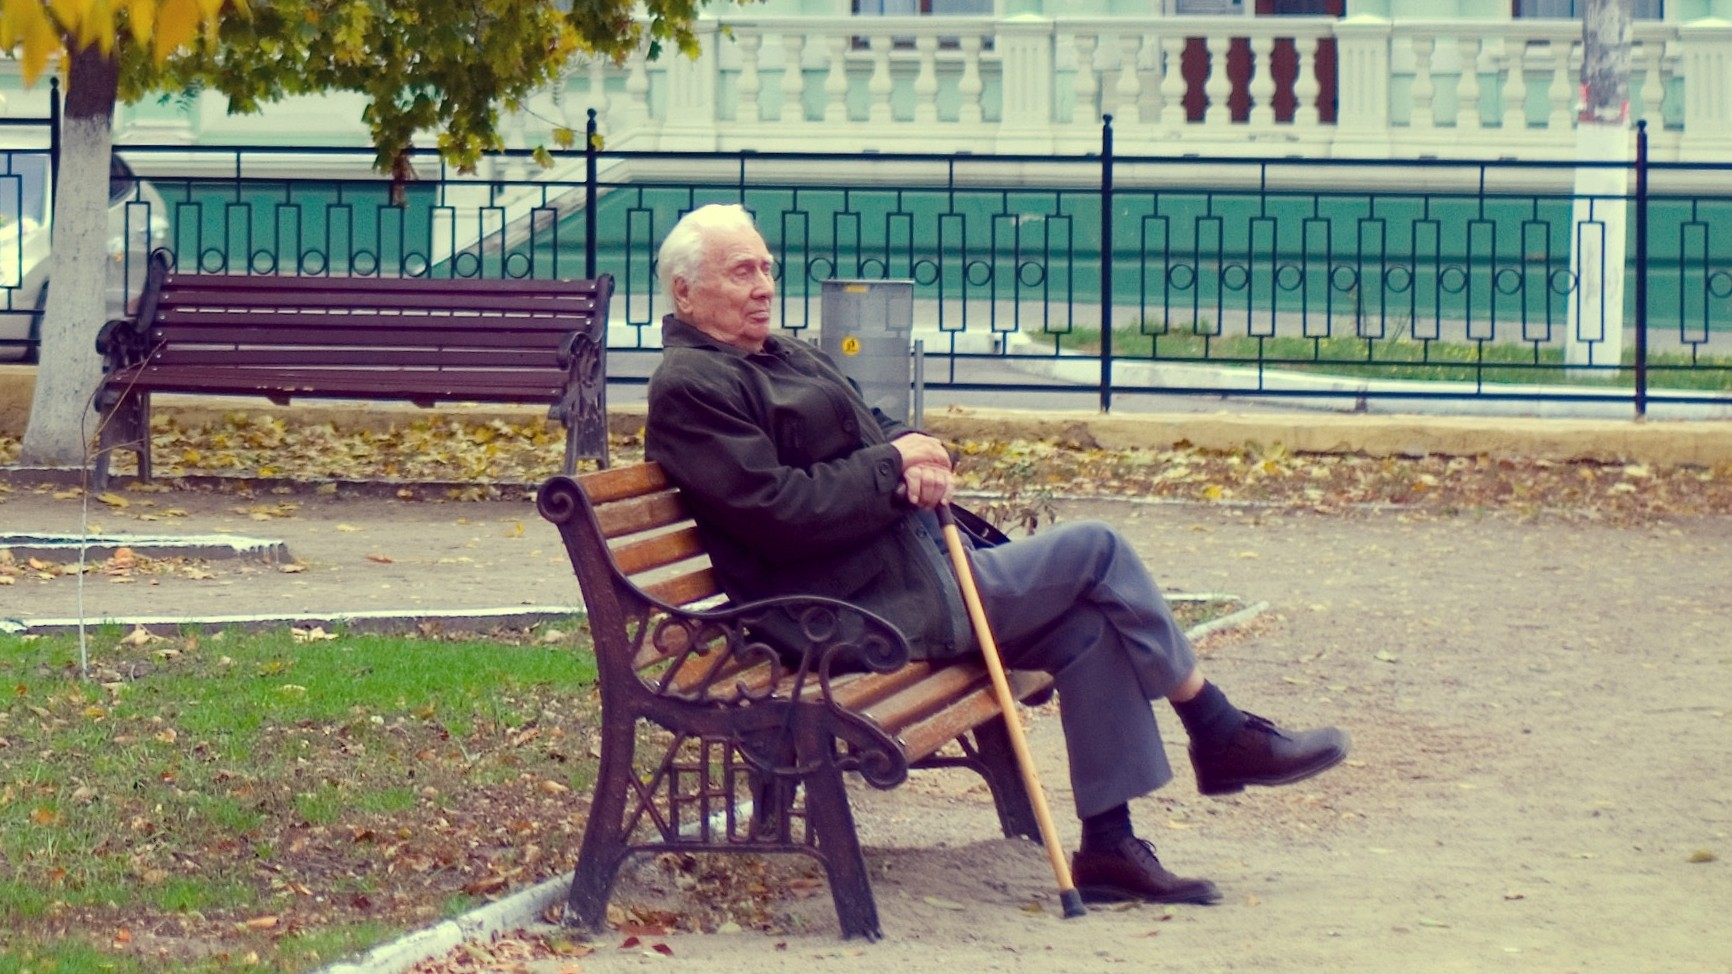 Elderly man on park bench